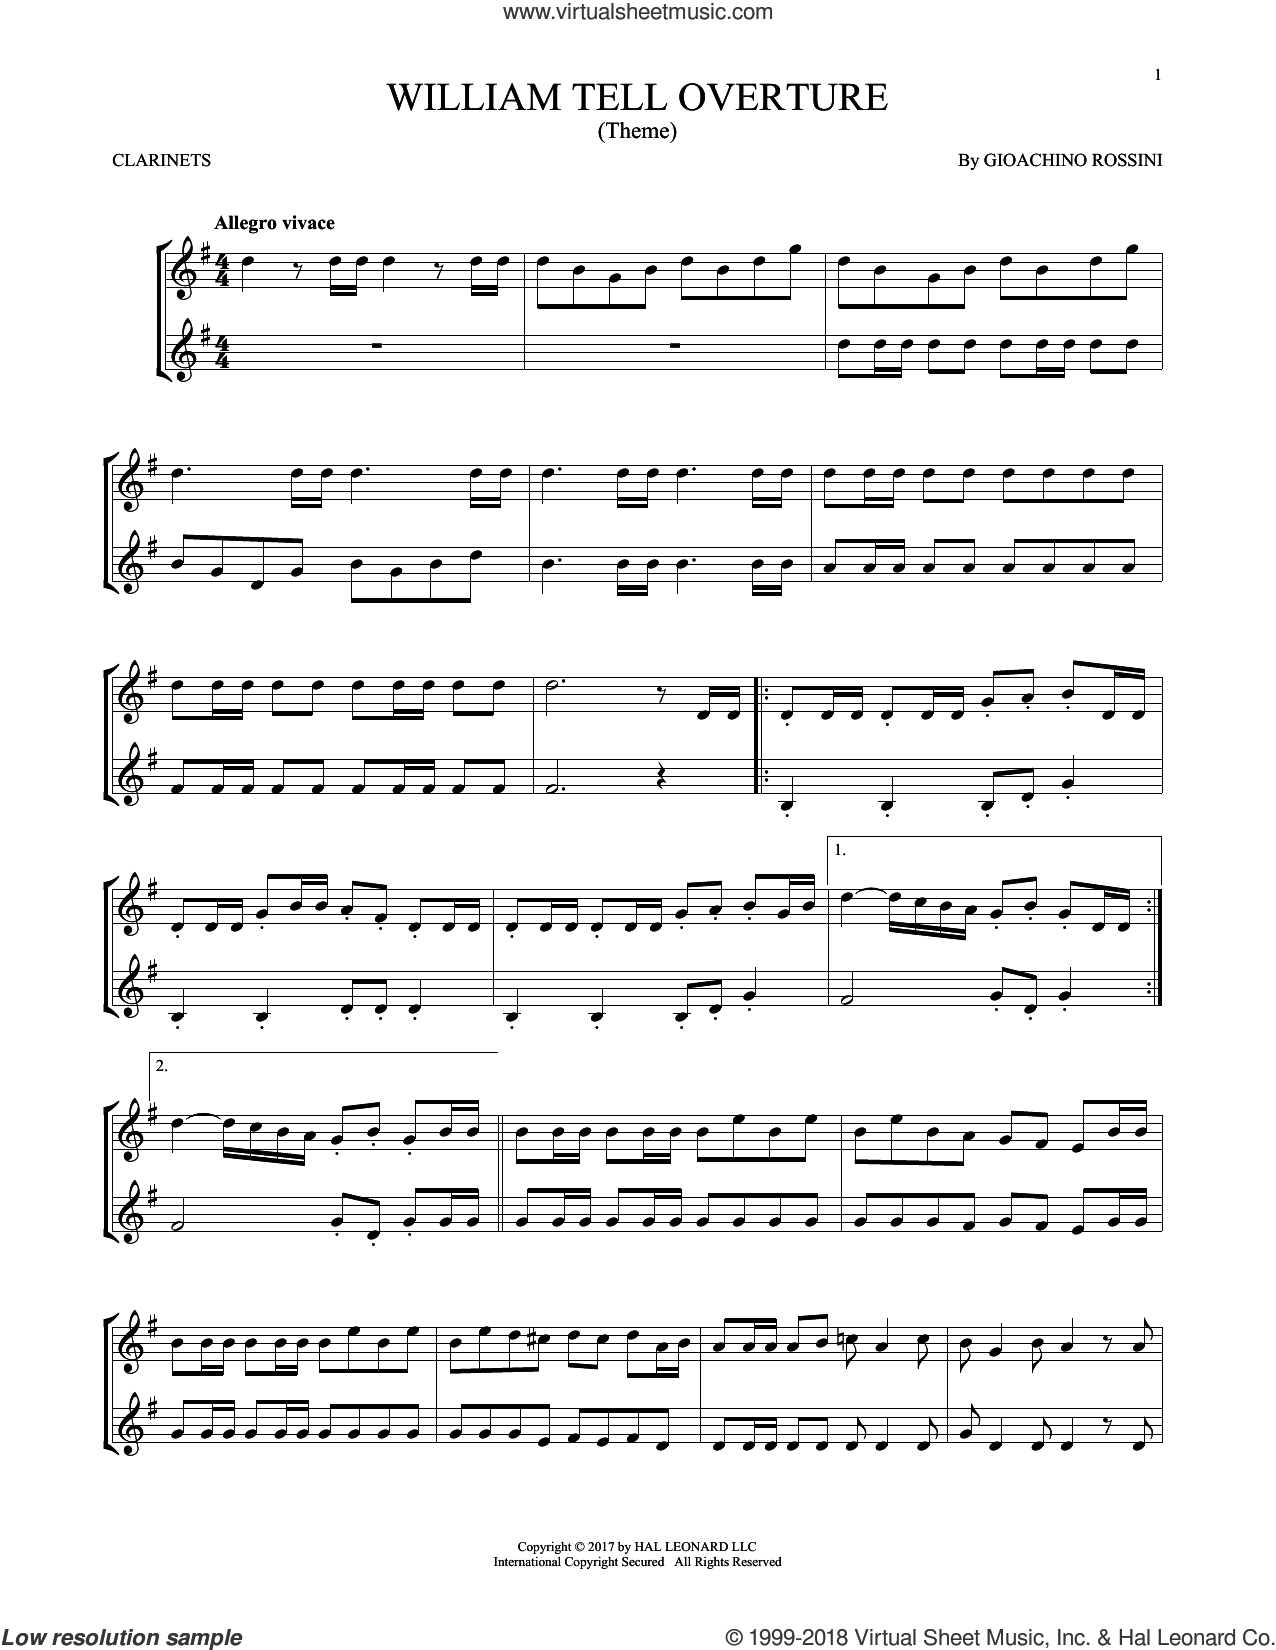 William Tell Overture sheet music for two clarinets (duets) by Rossini, Gioacchino, classical score, intermediate skill level